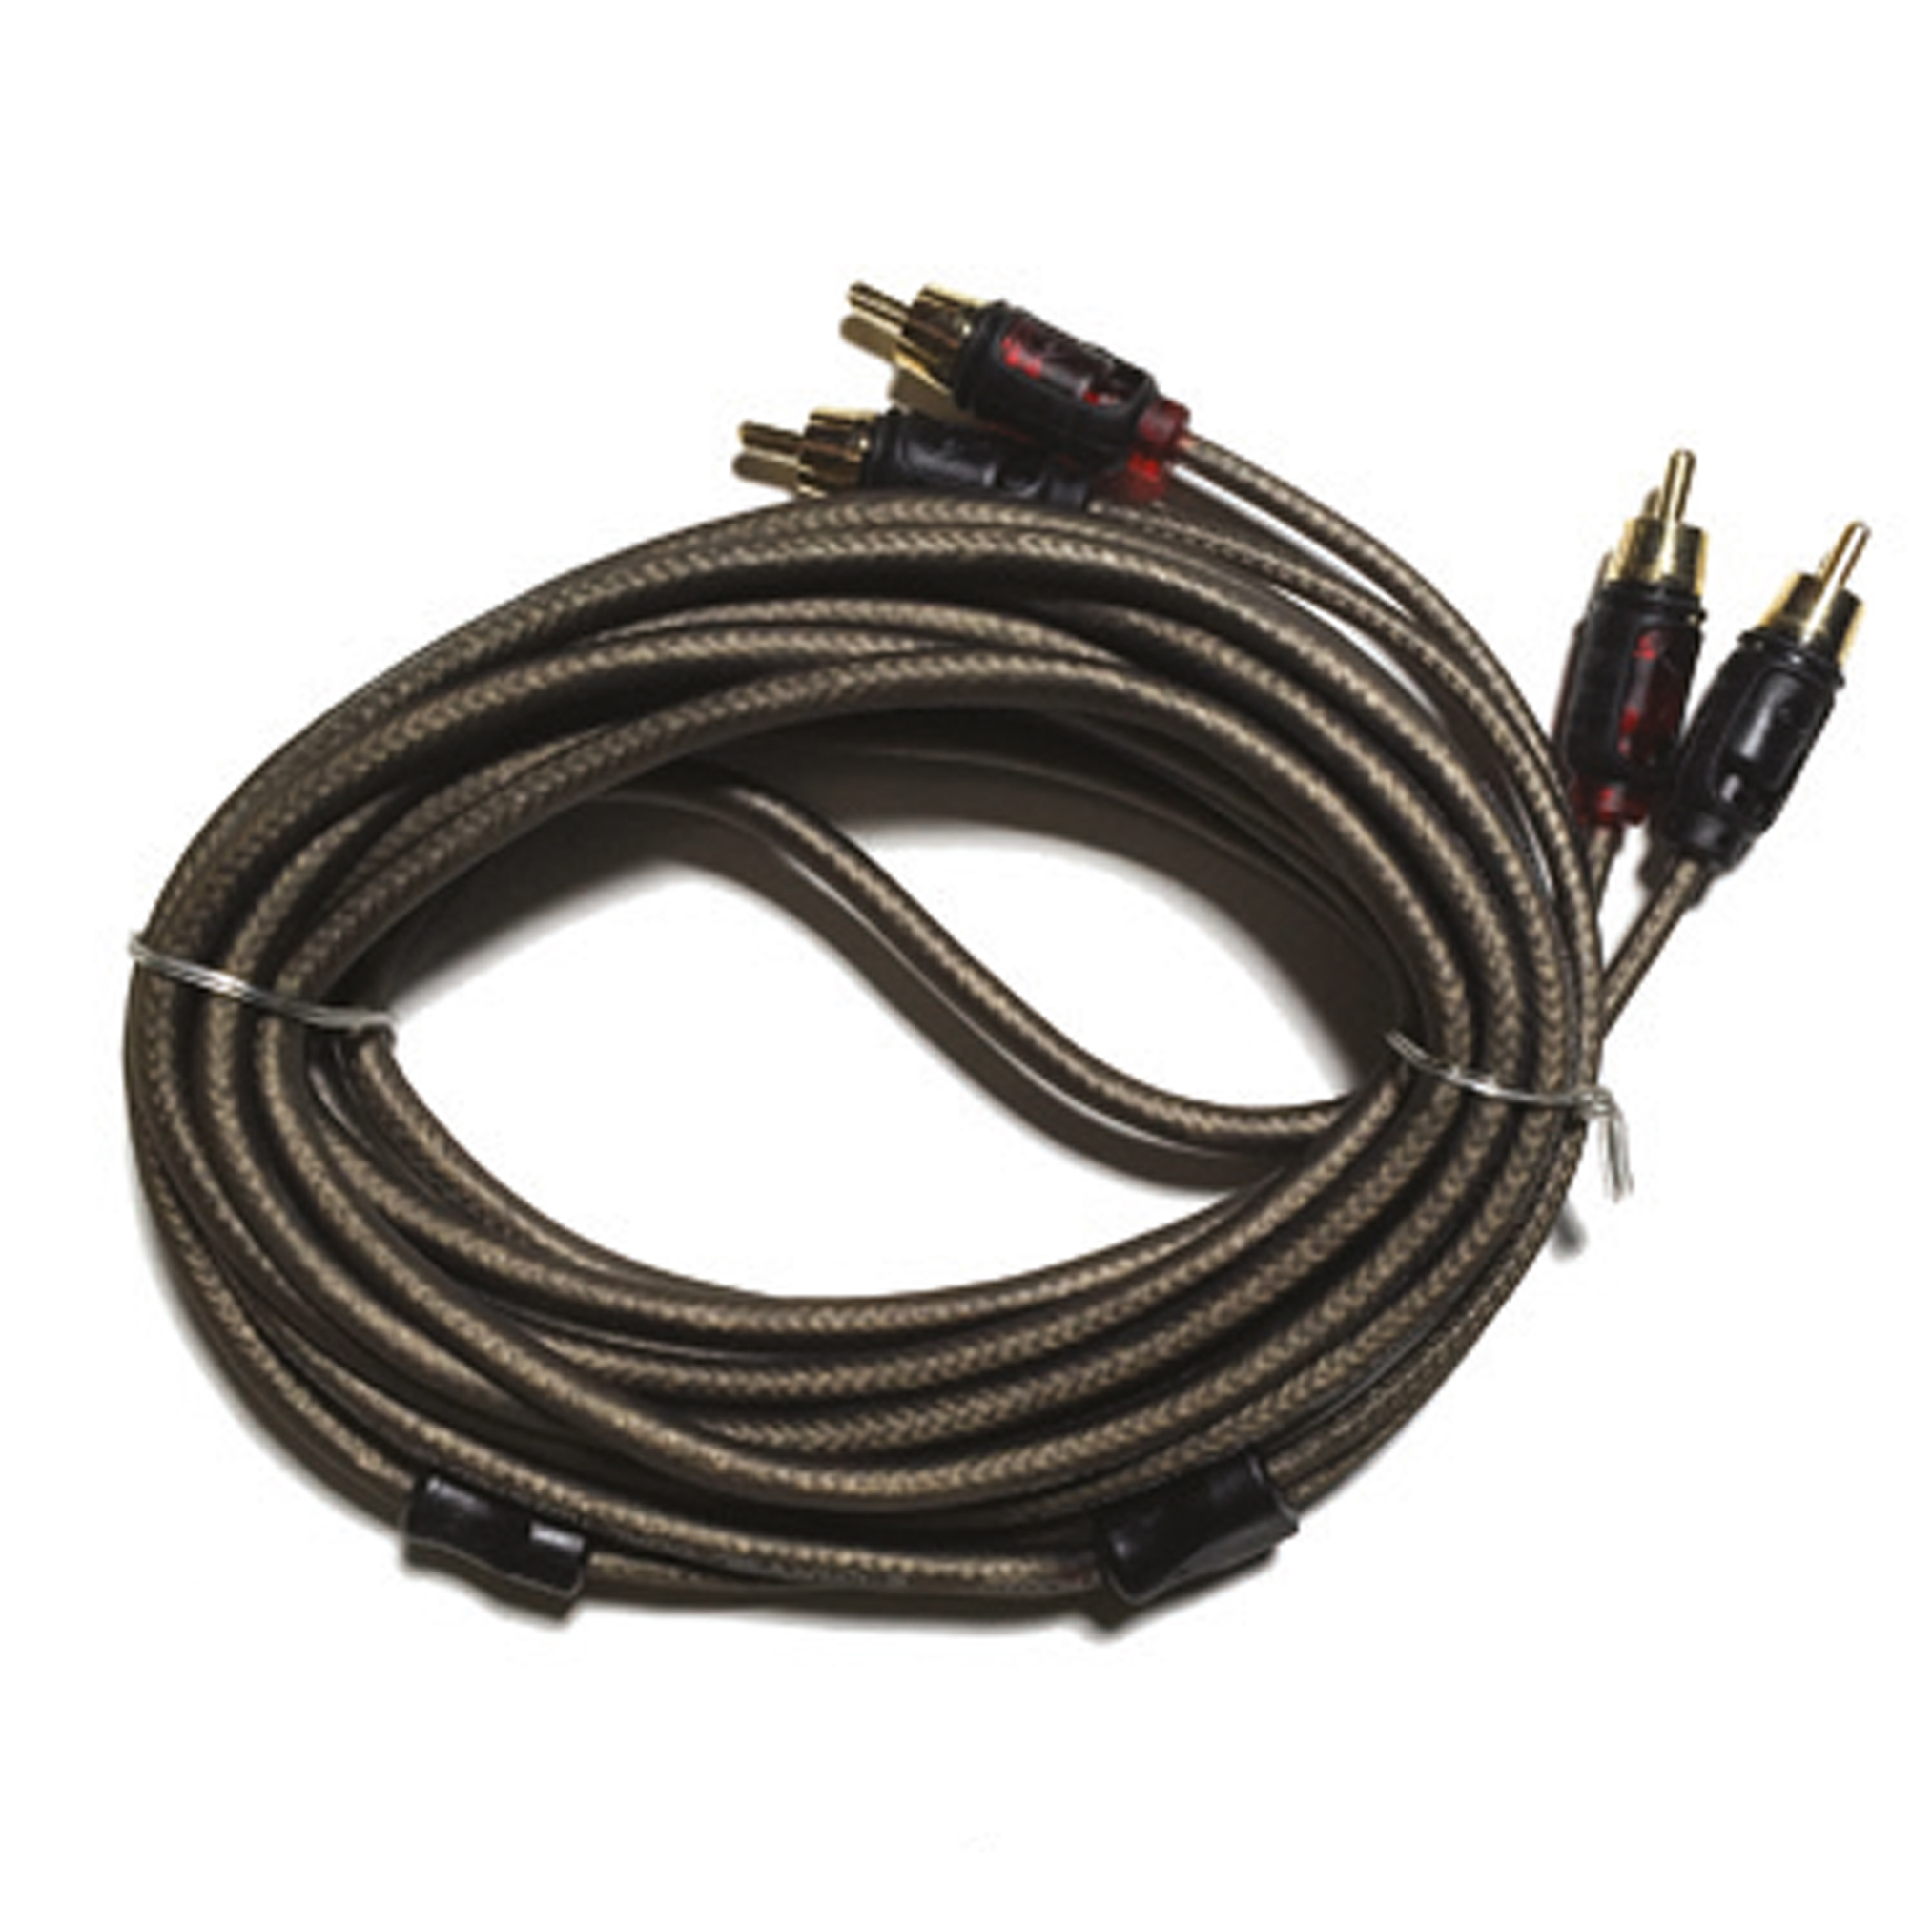 MARINE AUDIO 5.0M 2 CHANNEL RCA CABLE ROSWELL 2018